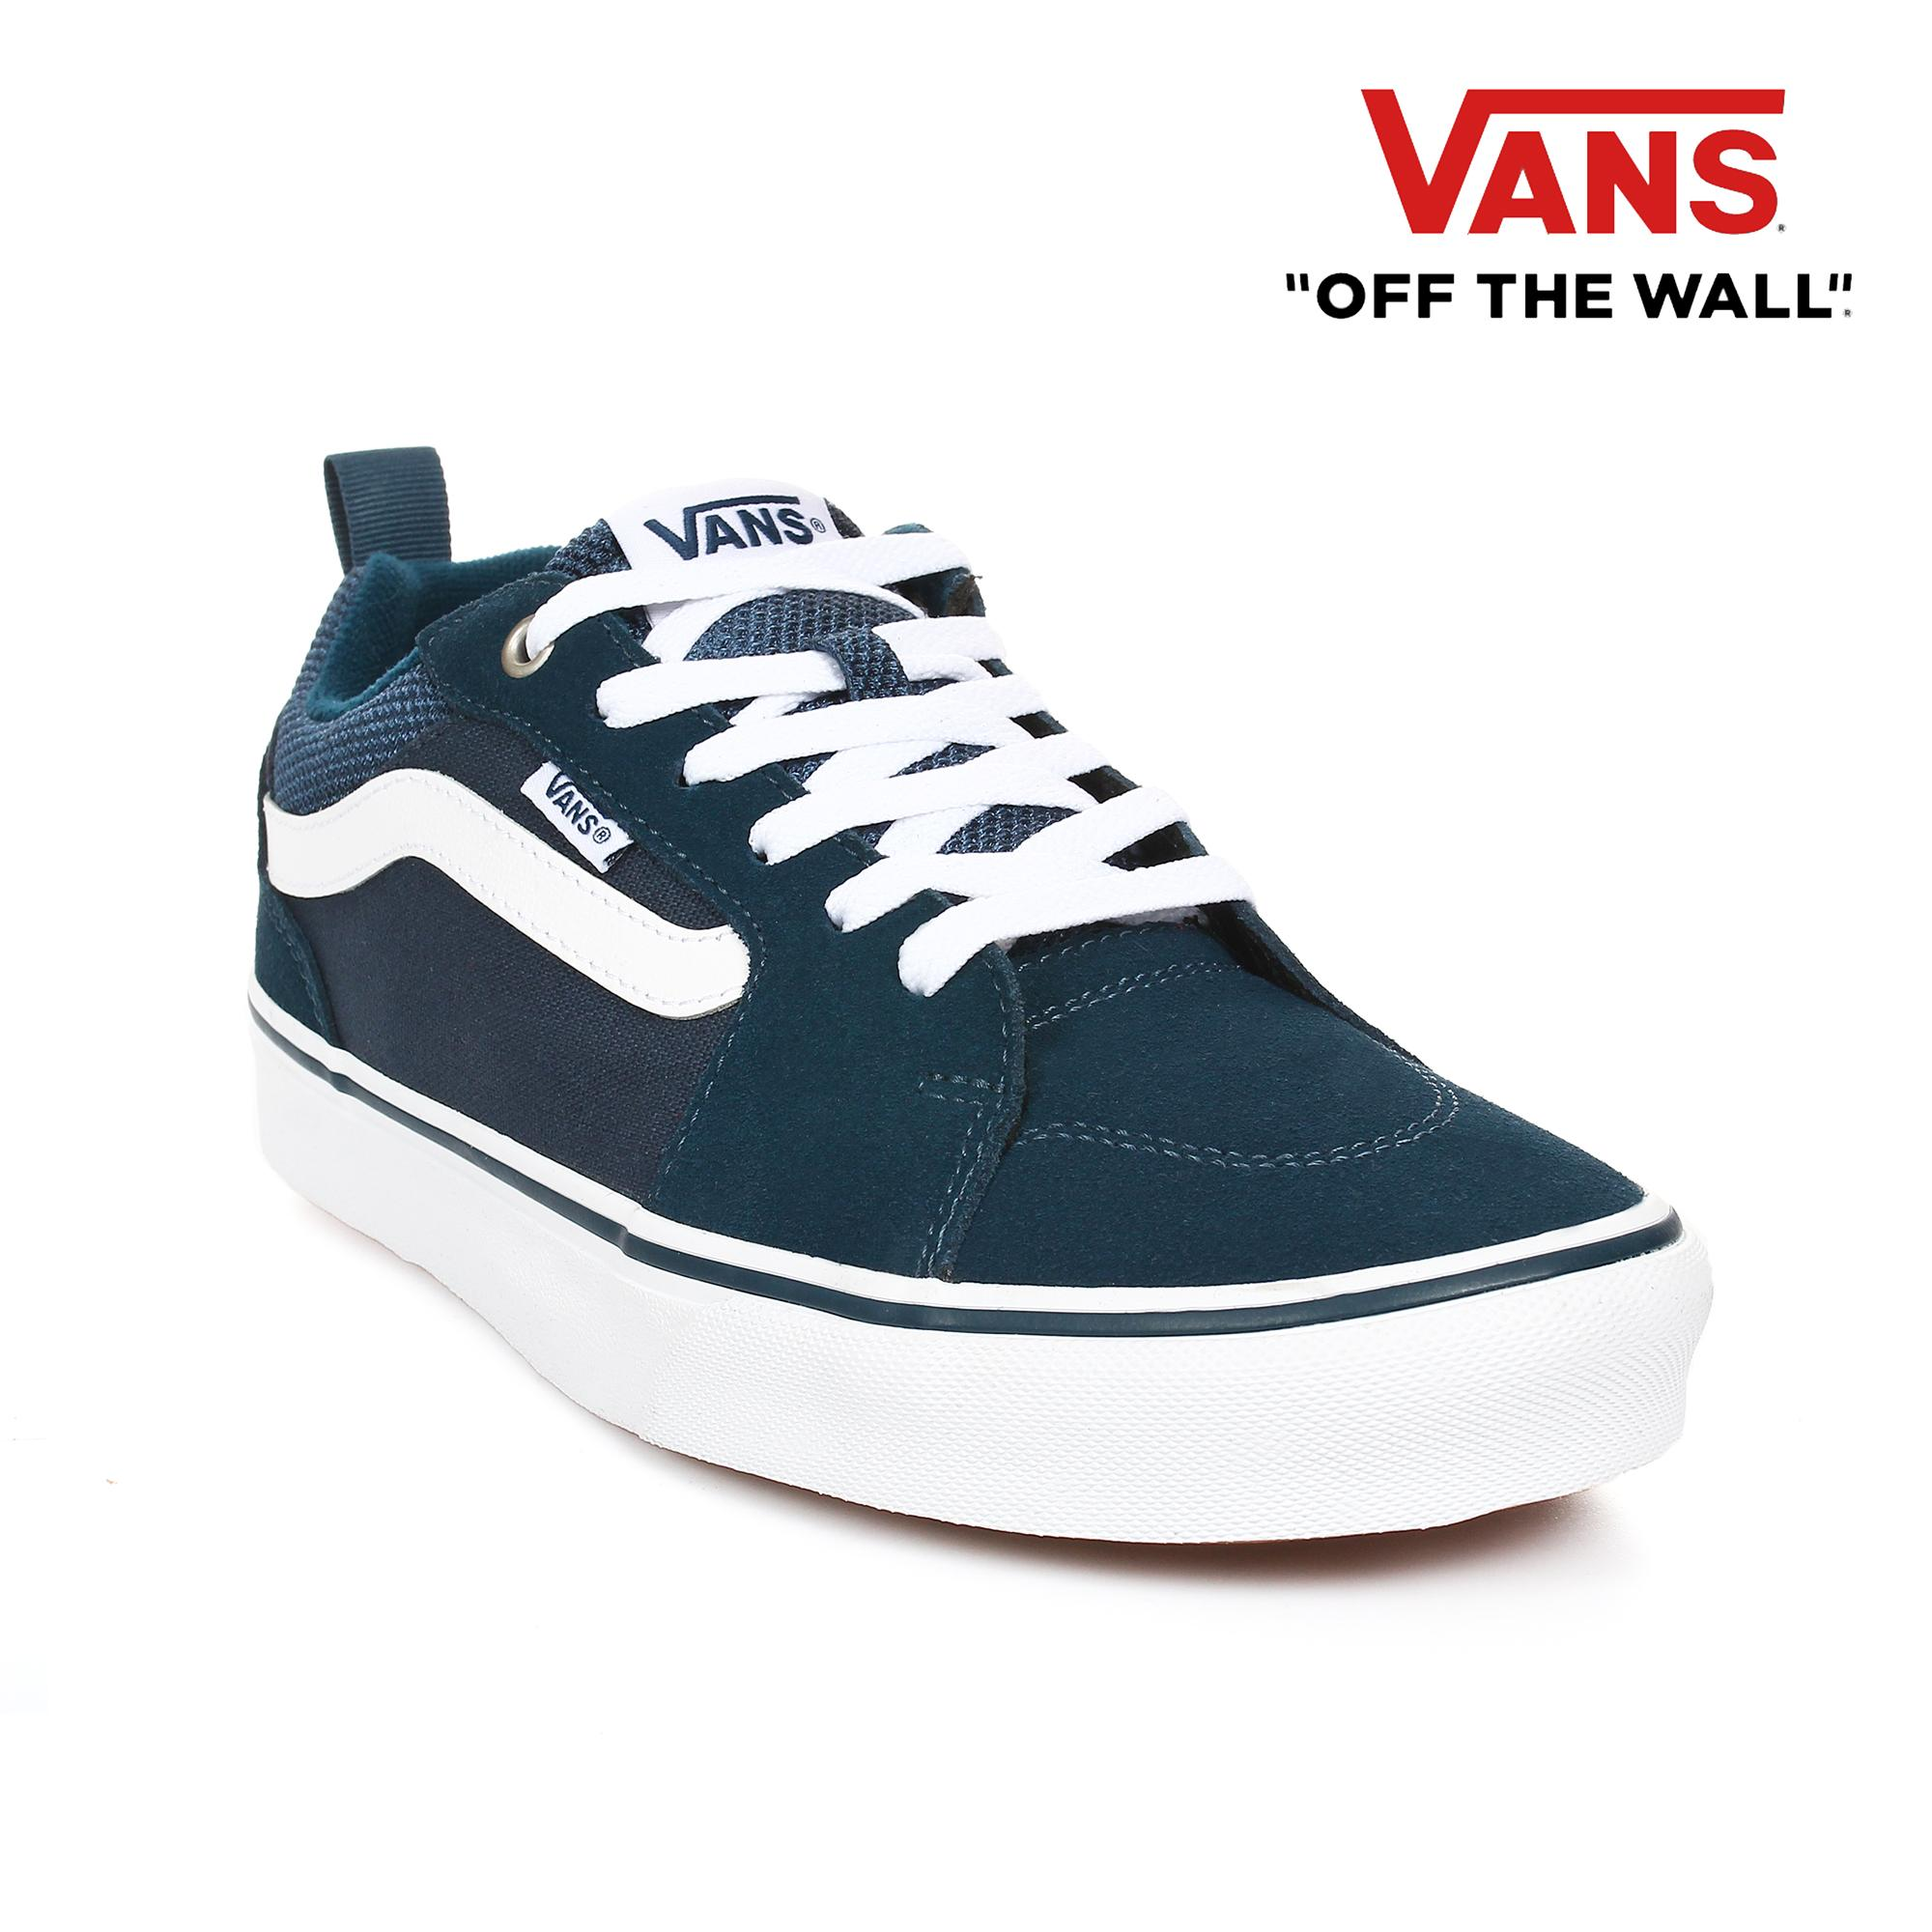 0c0a688530 Vans Shoes for Men Philippines - Vans Men s Shoes for sale - prices ...